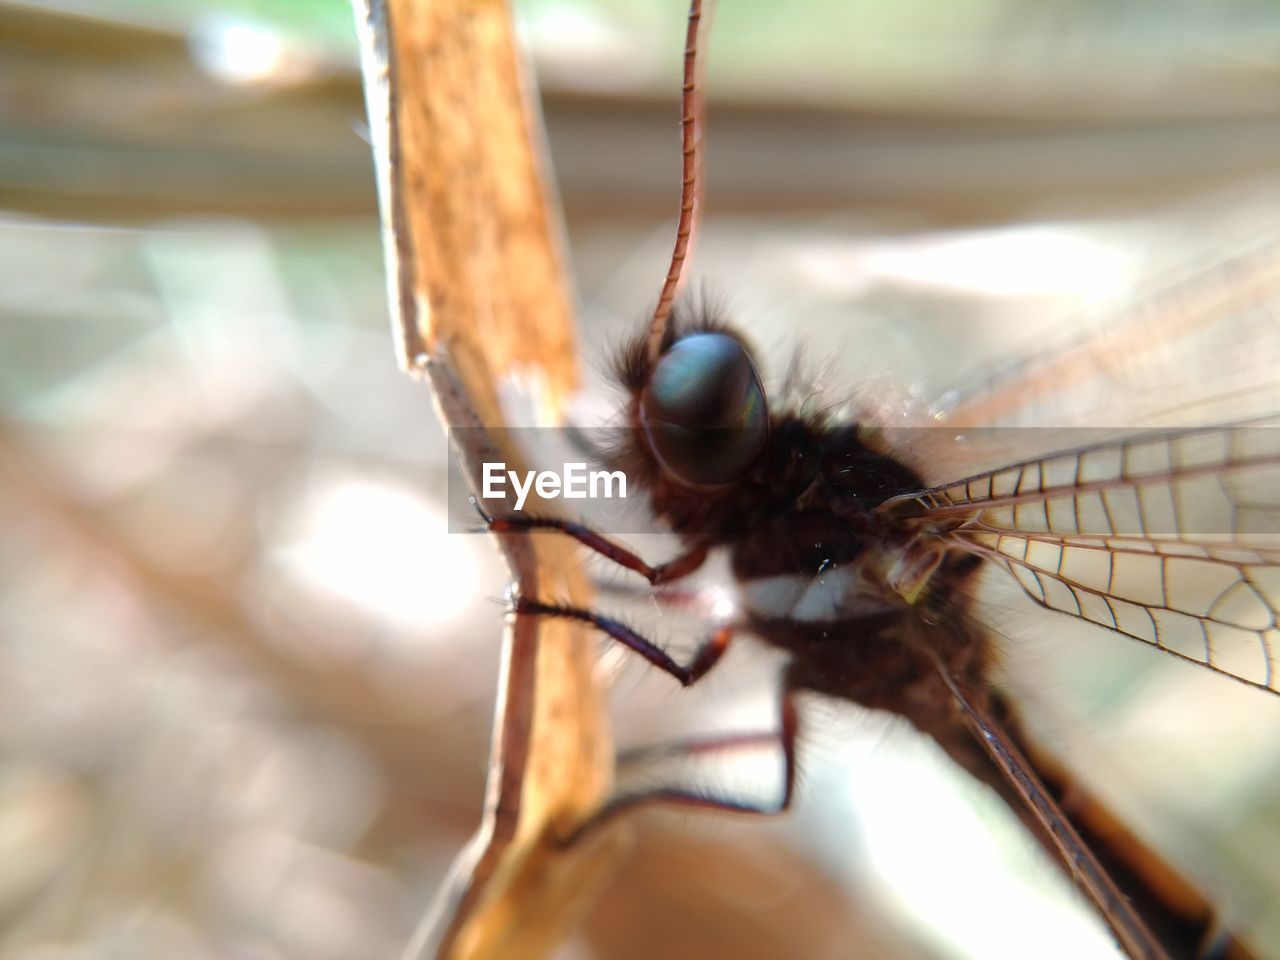 invertebrate, insect, animal themes, animals in the wild, animal wildlife, one animal, animal, close-up, animal wing, selective focus, day, animal body part, nature, eye, no people, animal eye, outdoors, zoology, focus on foreground, macro